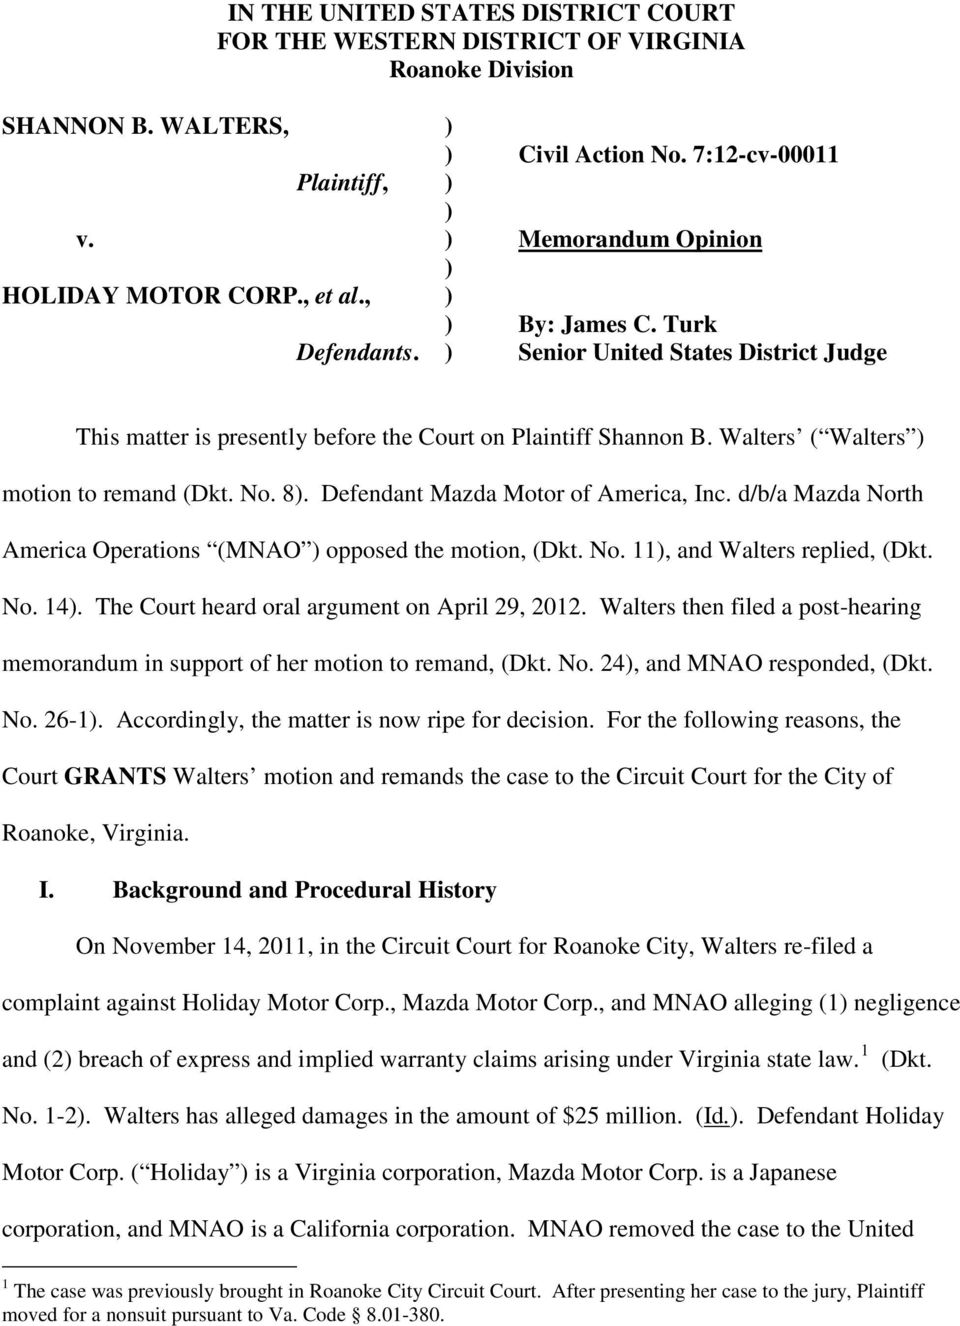 Walters ( Walters ) motion to remand (Dkt. No. 8). Defendant Mazda Motor of America, Inc. d/b/a Mazda North America Operations (MNAO ) opposed the motion, (Dkt. No. 11), and Walters replied, (Dkt. No. 14).